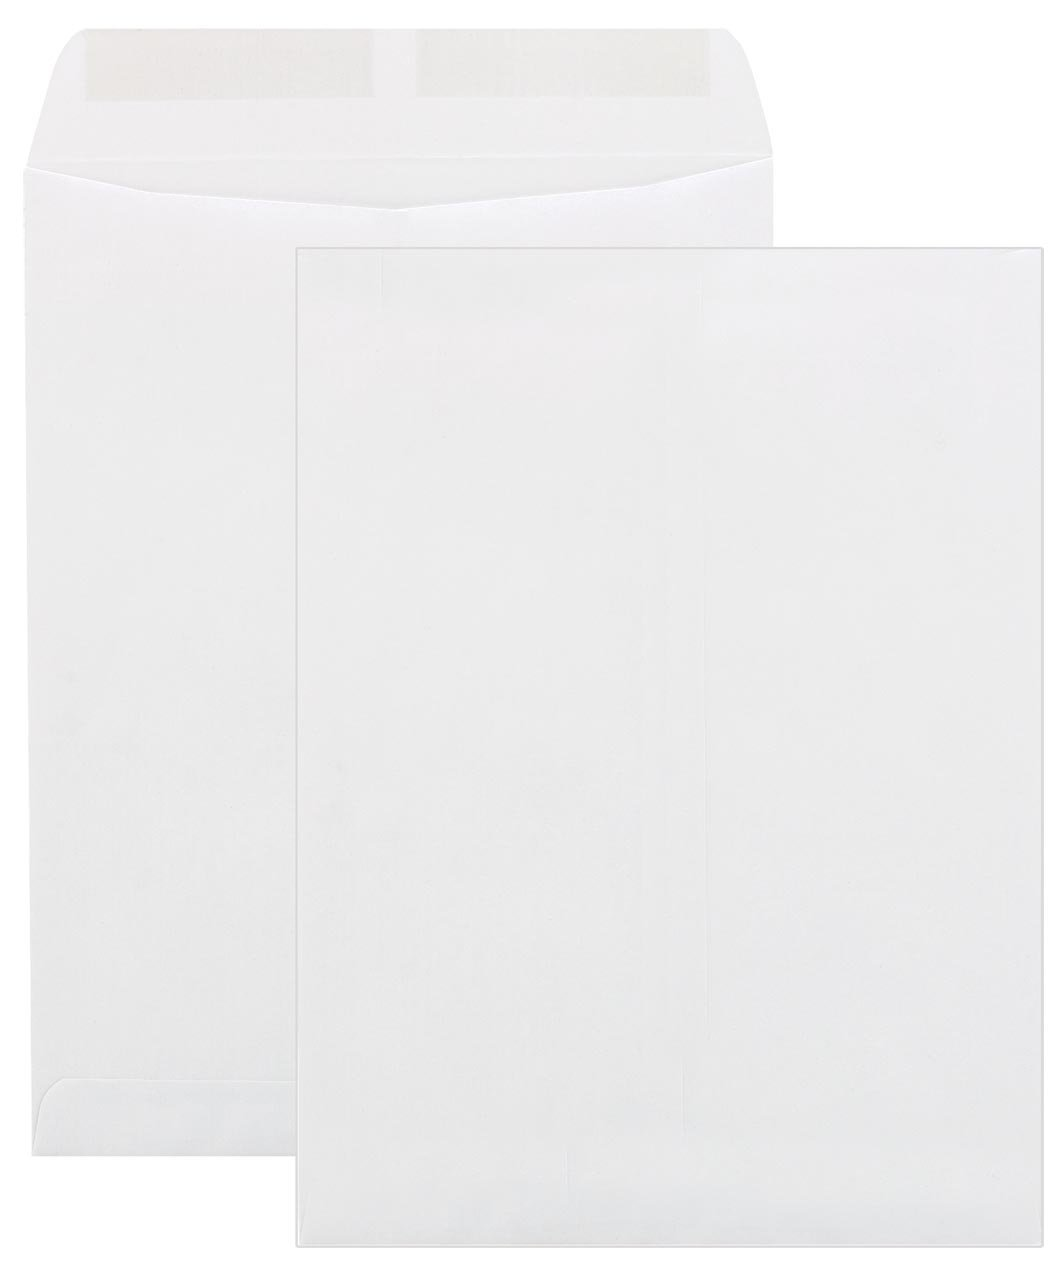 Columbian CO642 10x13-Inch Catalog White Envelopes, 250 Count